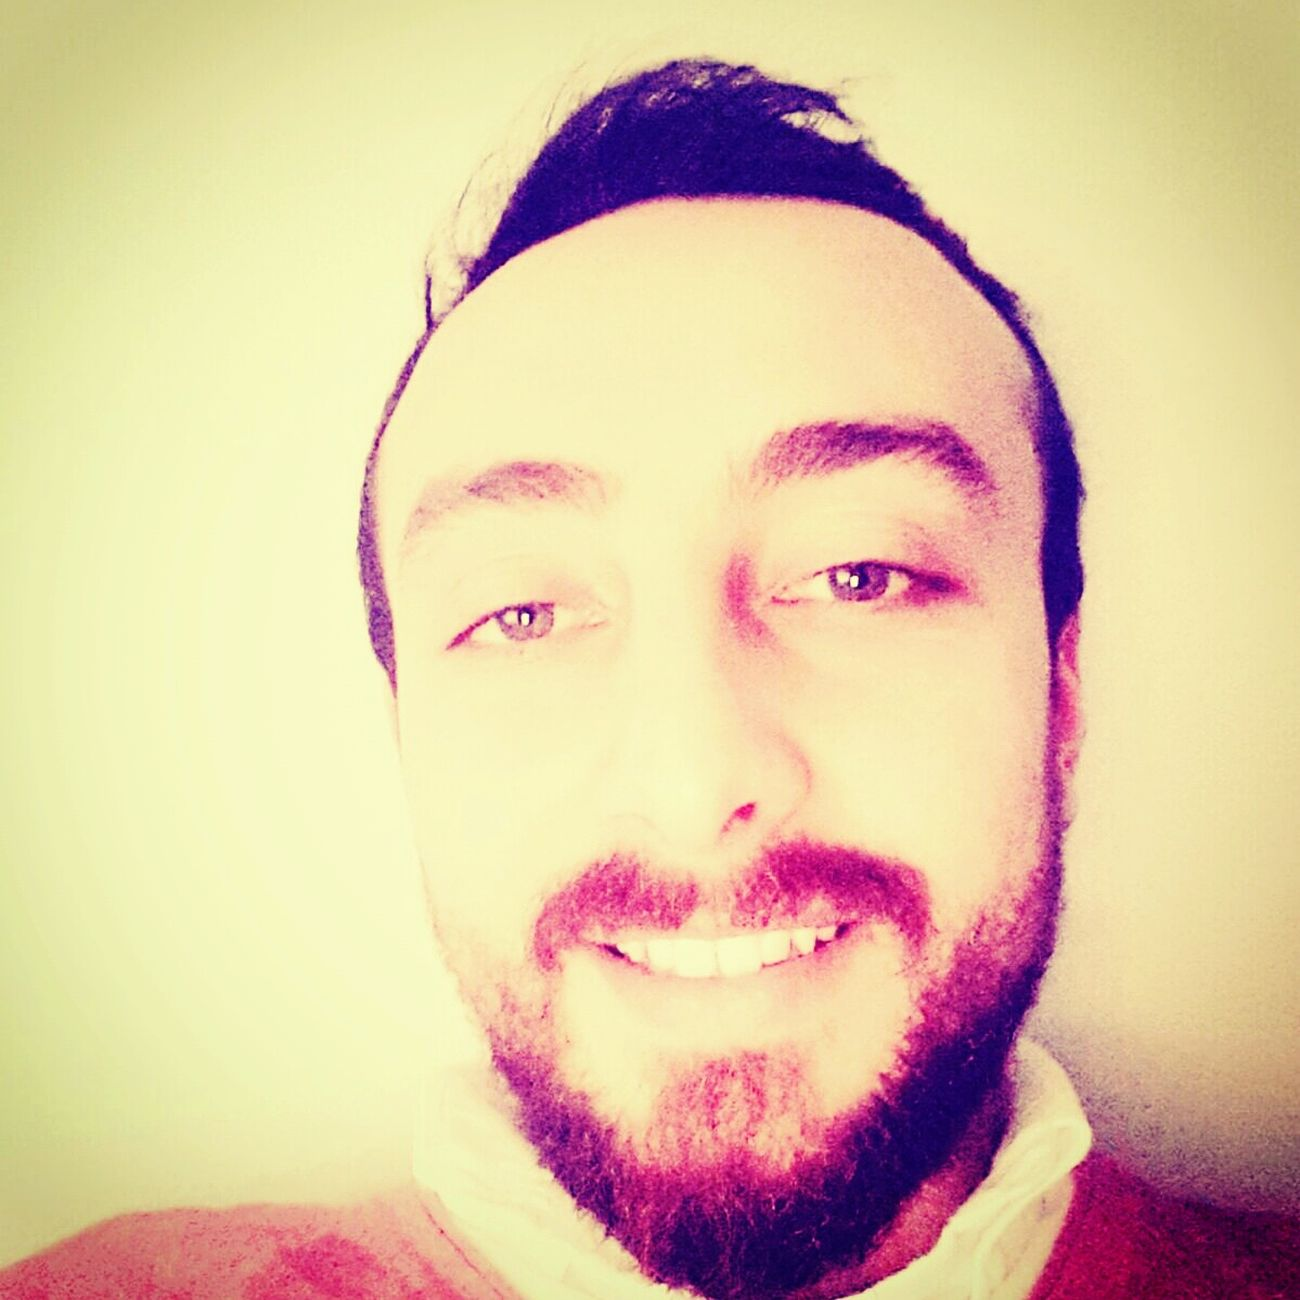 Hi! Hello Nice Day Taking Photos People Watching EyeEm Model Cool_capture_ Istanbull Like Instagood Telephone Popular Photos HelloEyeEm Likeyou My Album Selfies White Album Farukozcn 2016 Is Coming Crazy Moments First Eyeem Photo Nature Şişli Osman Bey Good Morning